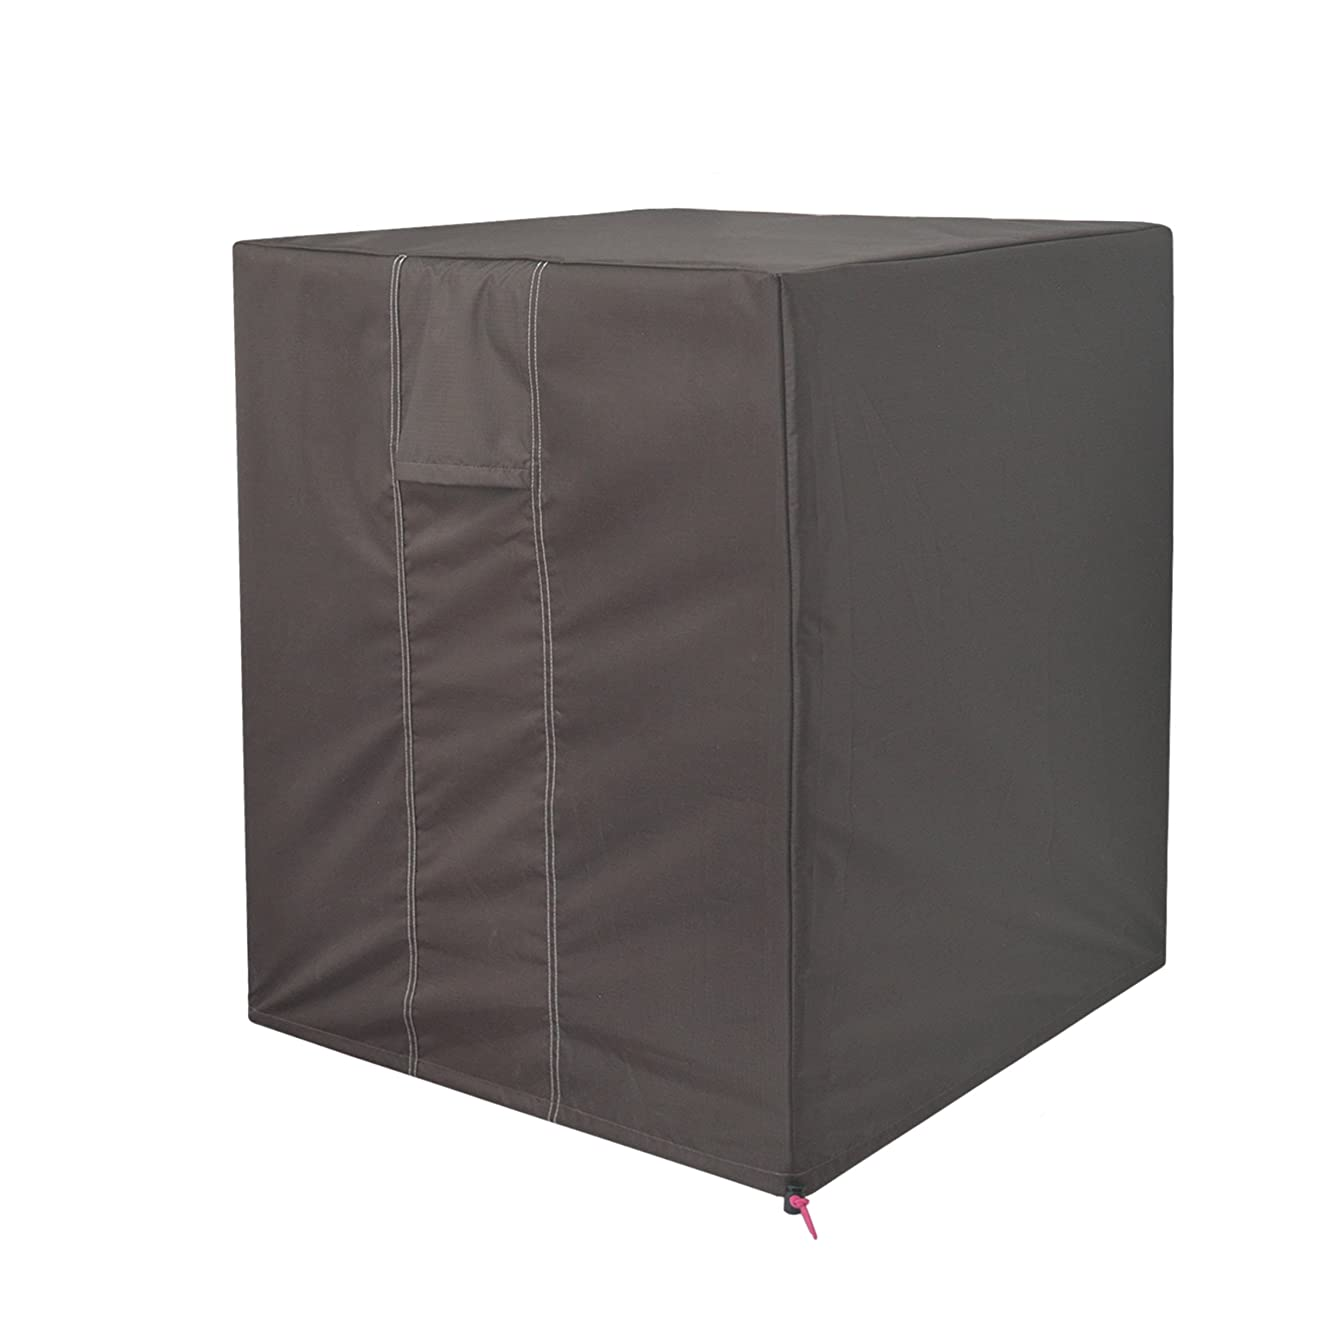 Jeacent Central Air Conditioner Covers for Outside Units wpdzhycuwqtgq97